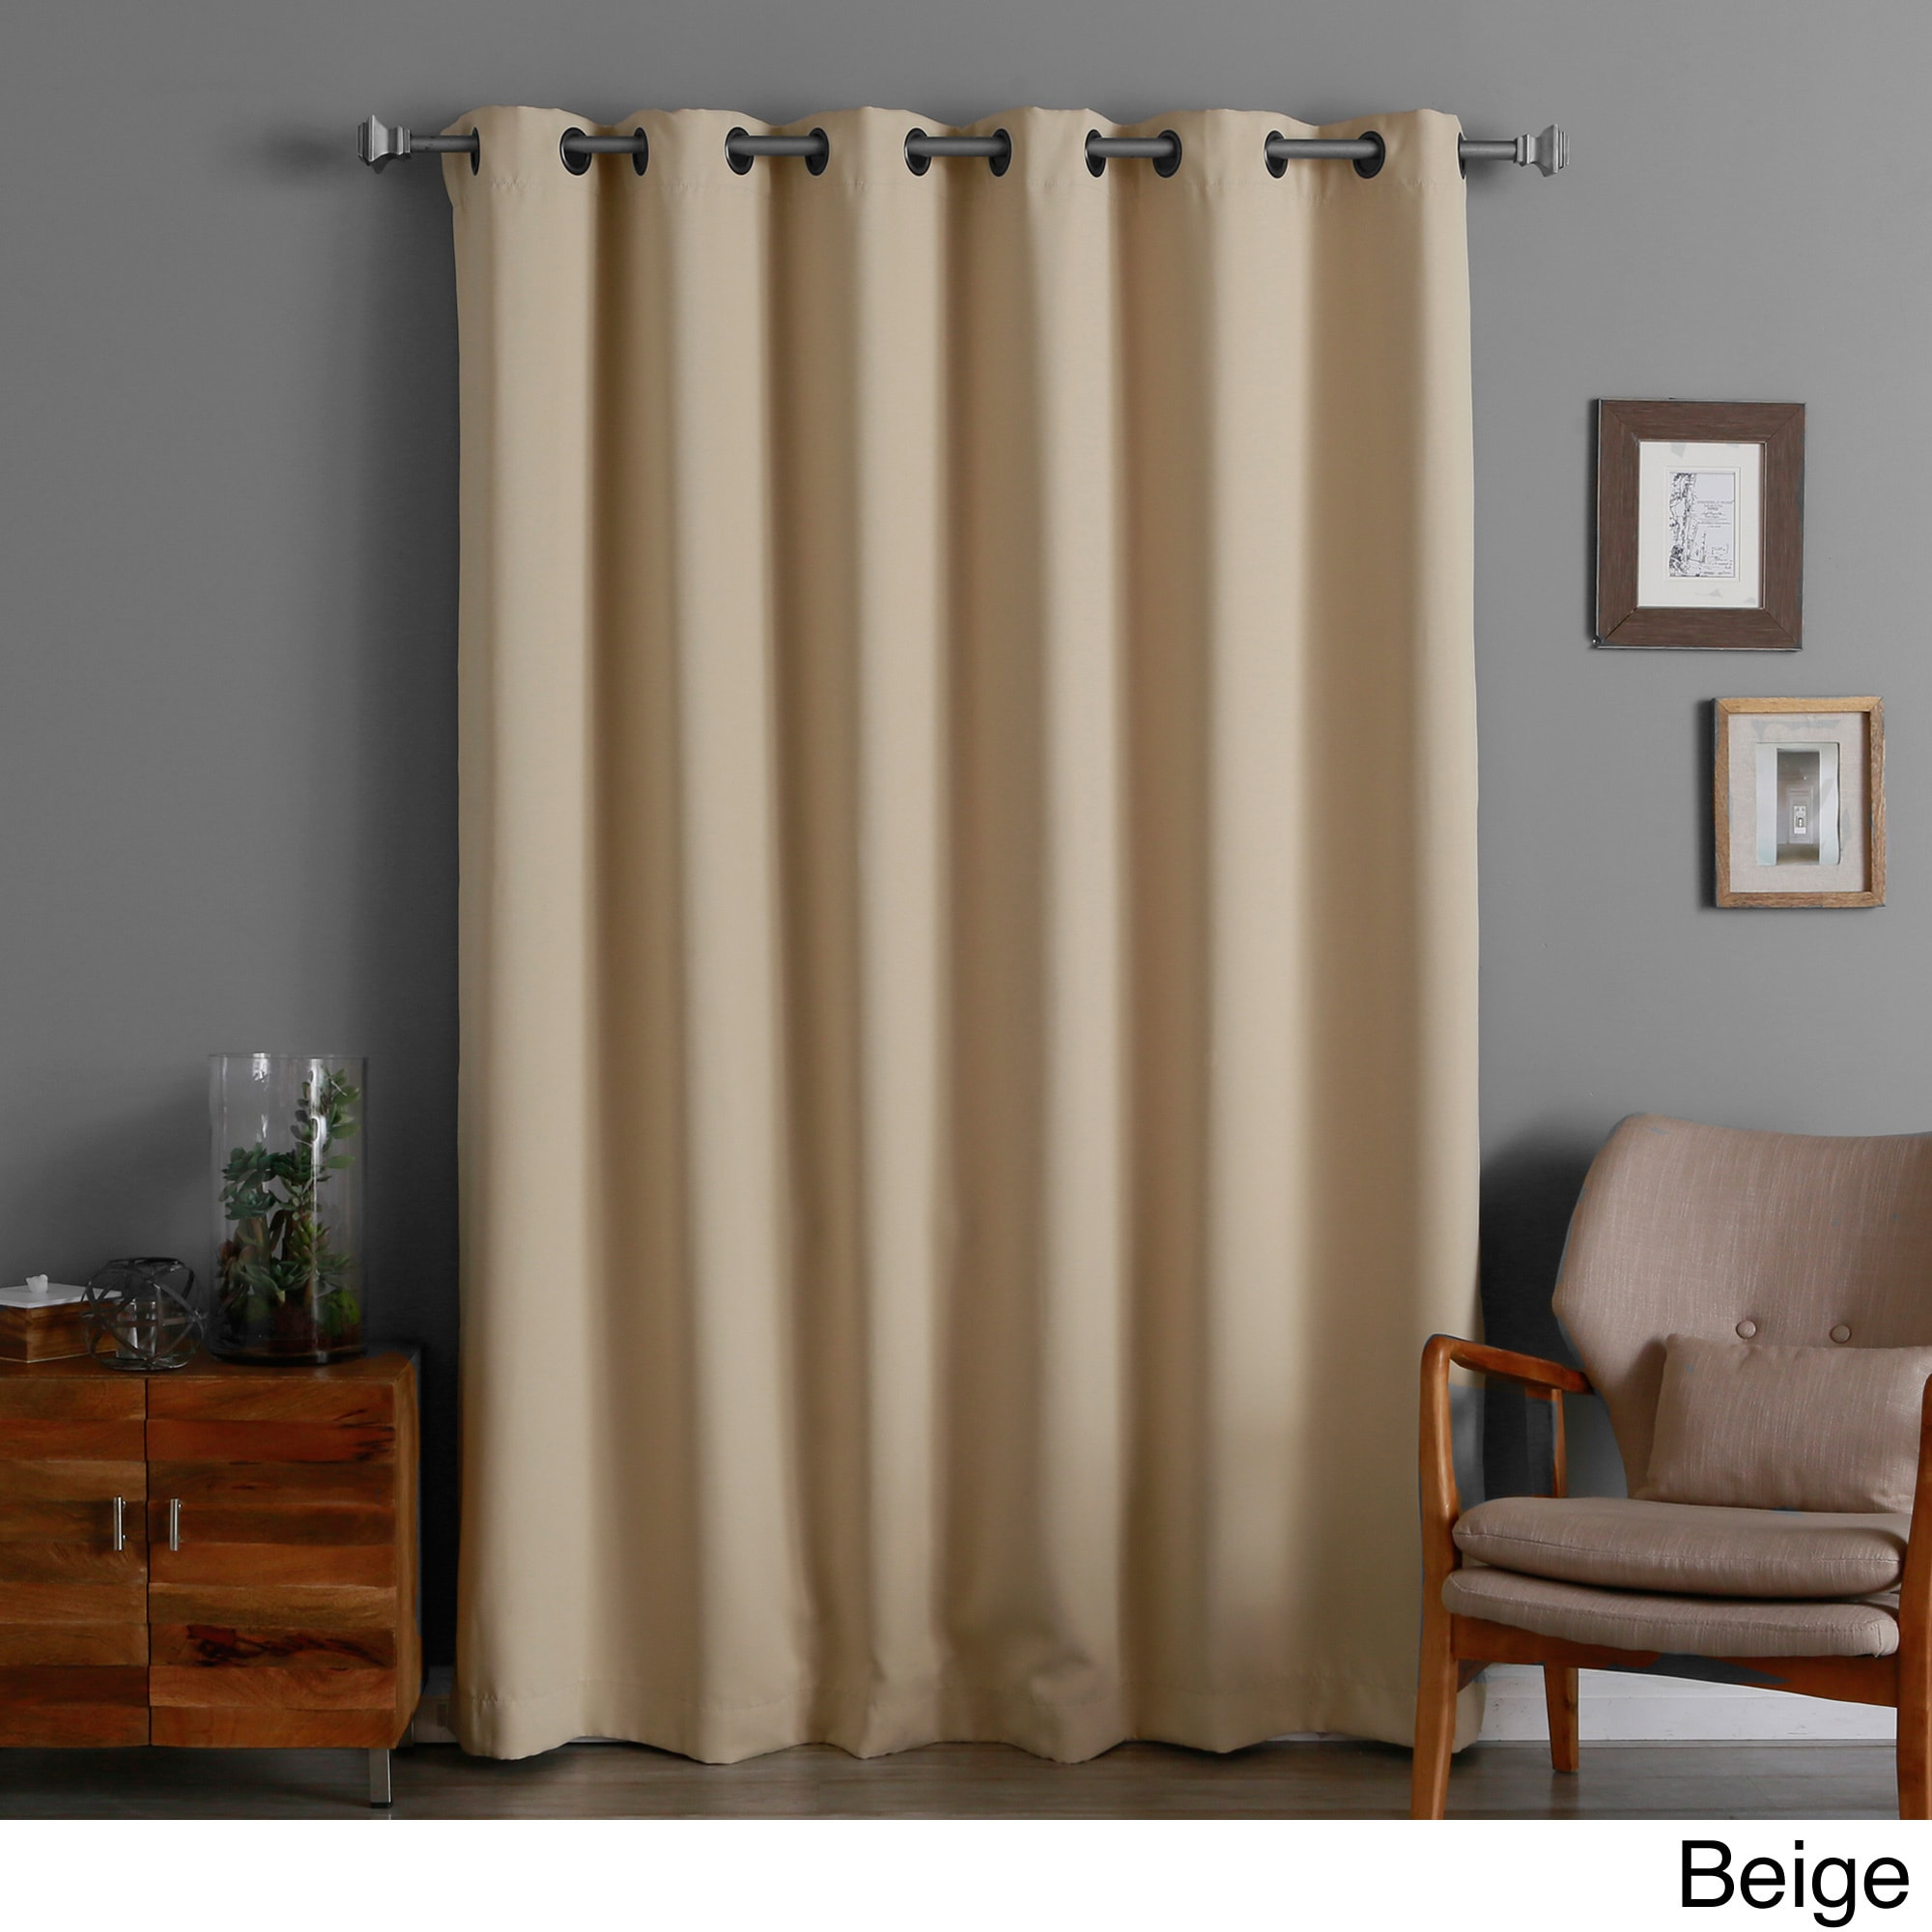 Dark Red Blackout Curtains Aurora Home 84 Inch Wide Width Thermal Blackout Curtain Panel